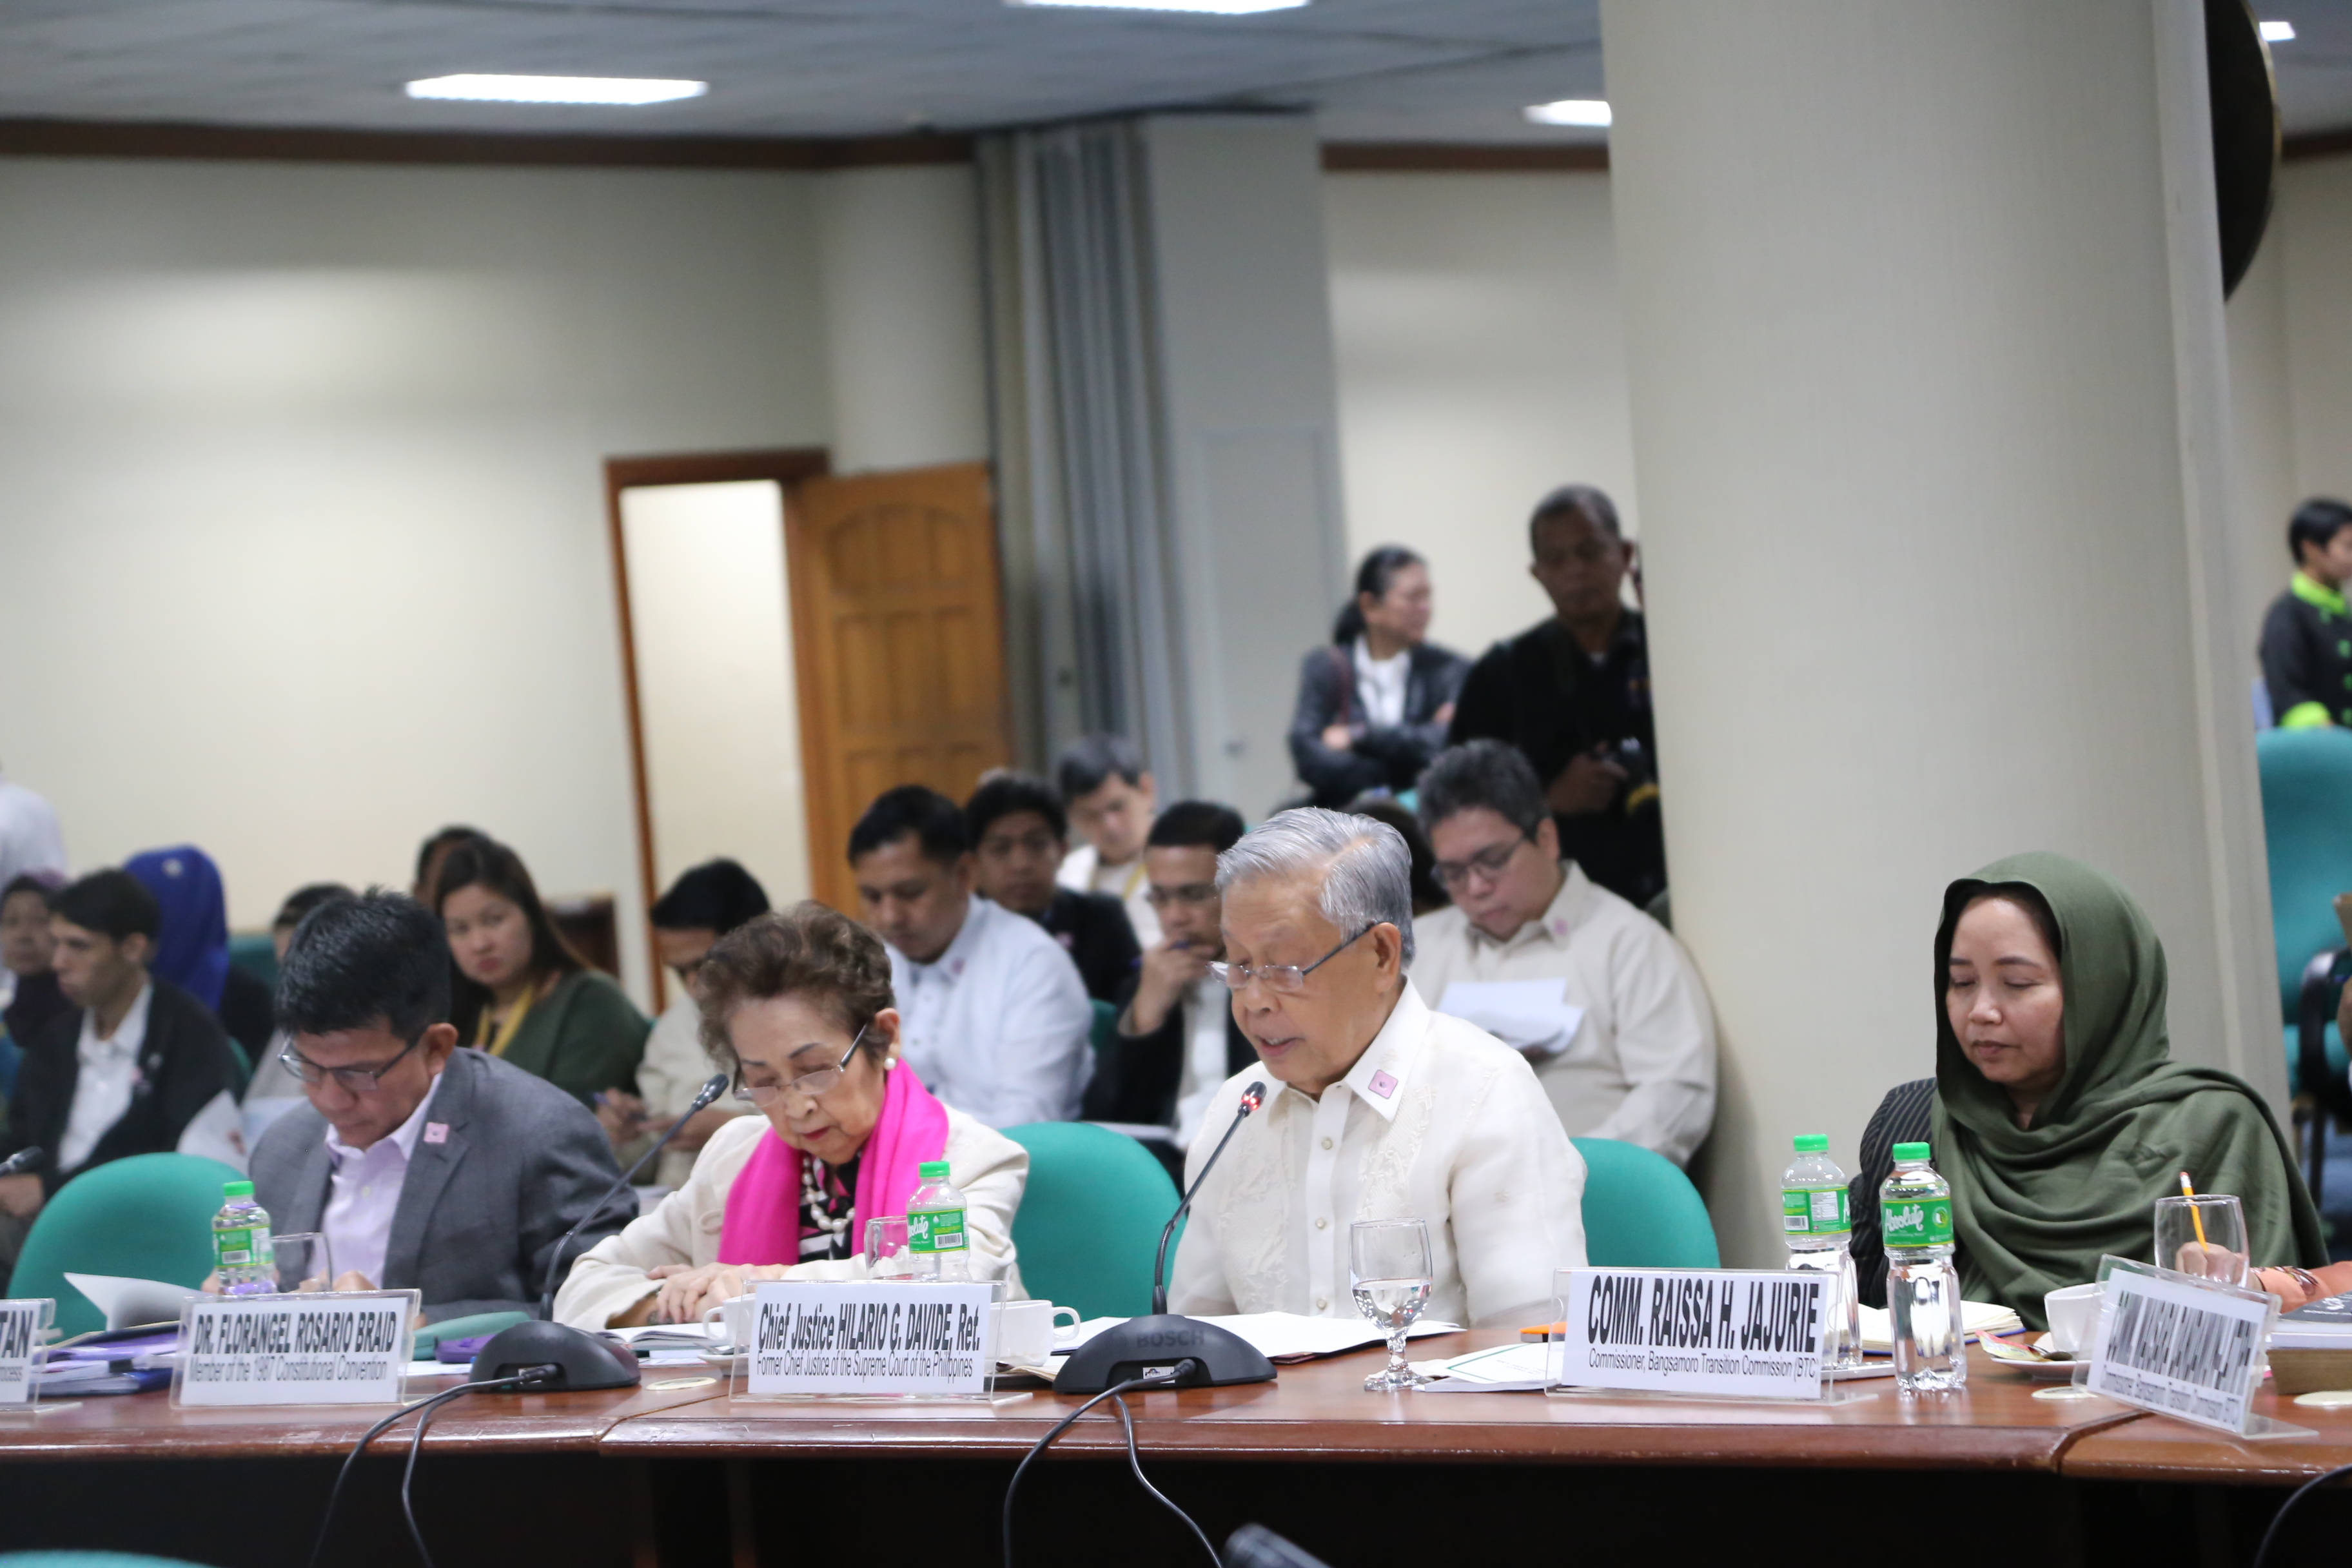 Retired SC chief justice affirms BBL's constitutionality